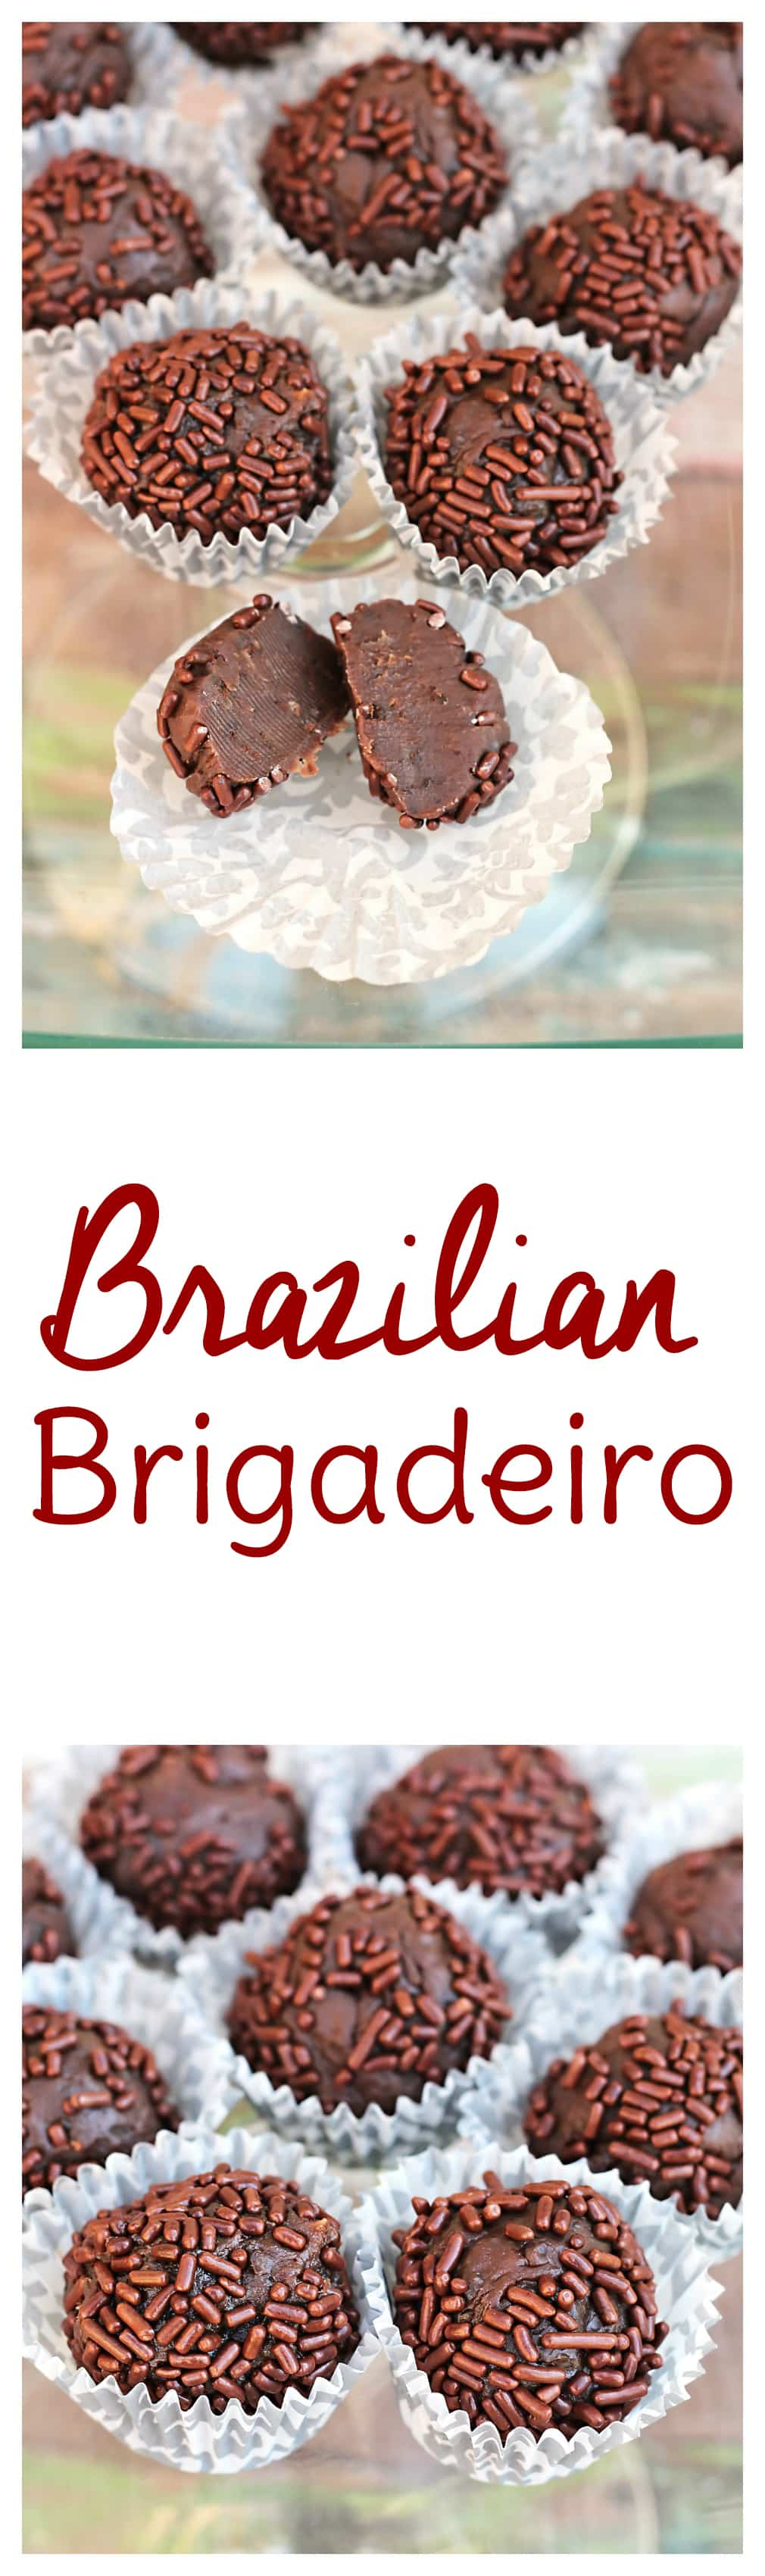 Brazilian Candy Brigadeiro Recipe (Tootsie Roll Copycat Recipe)